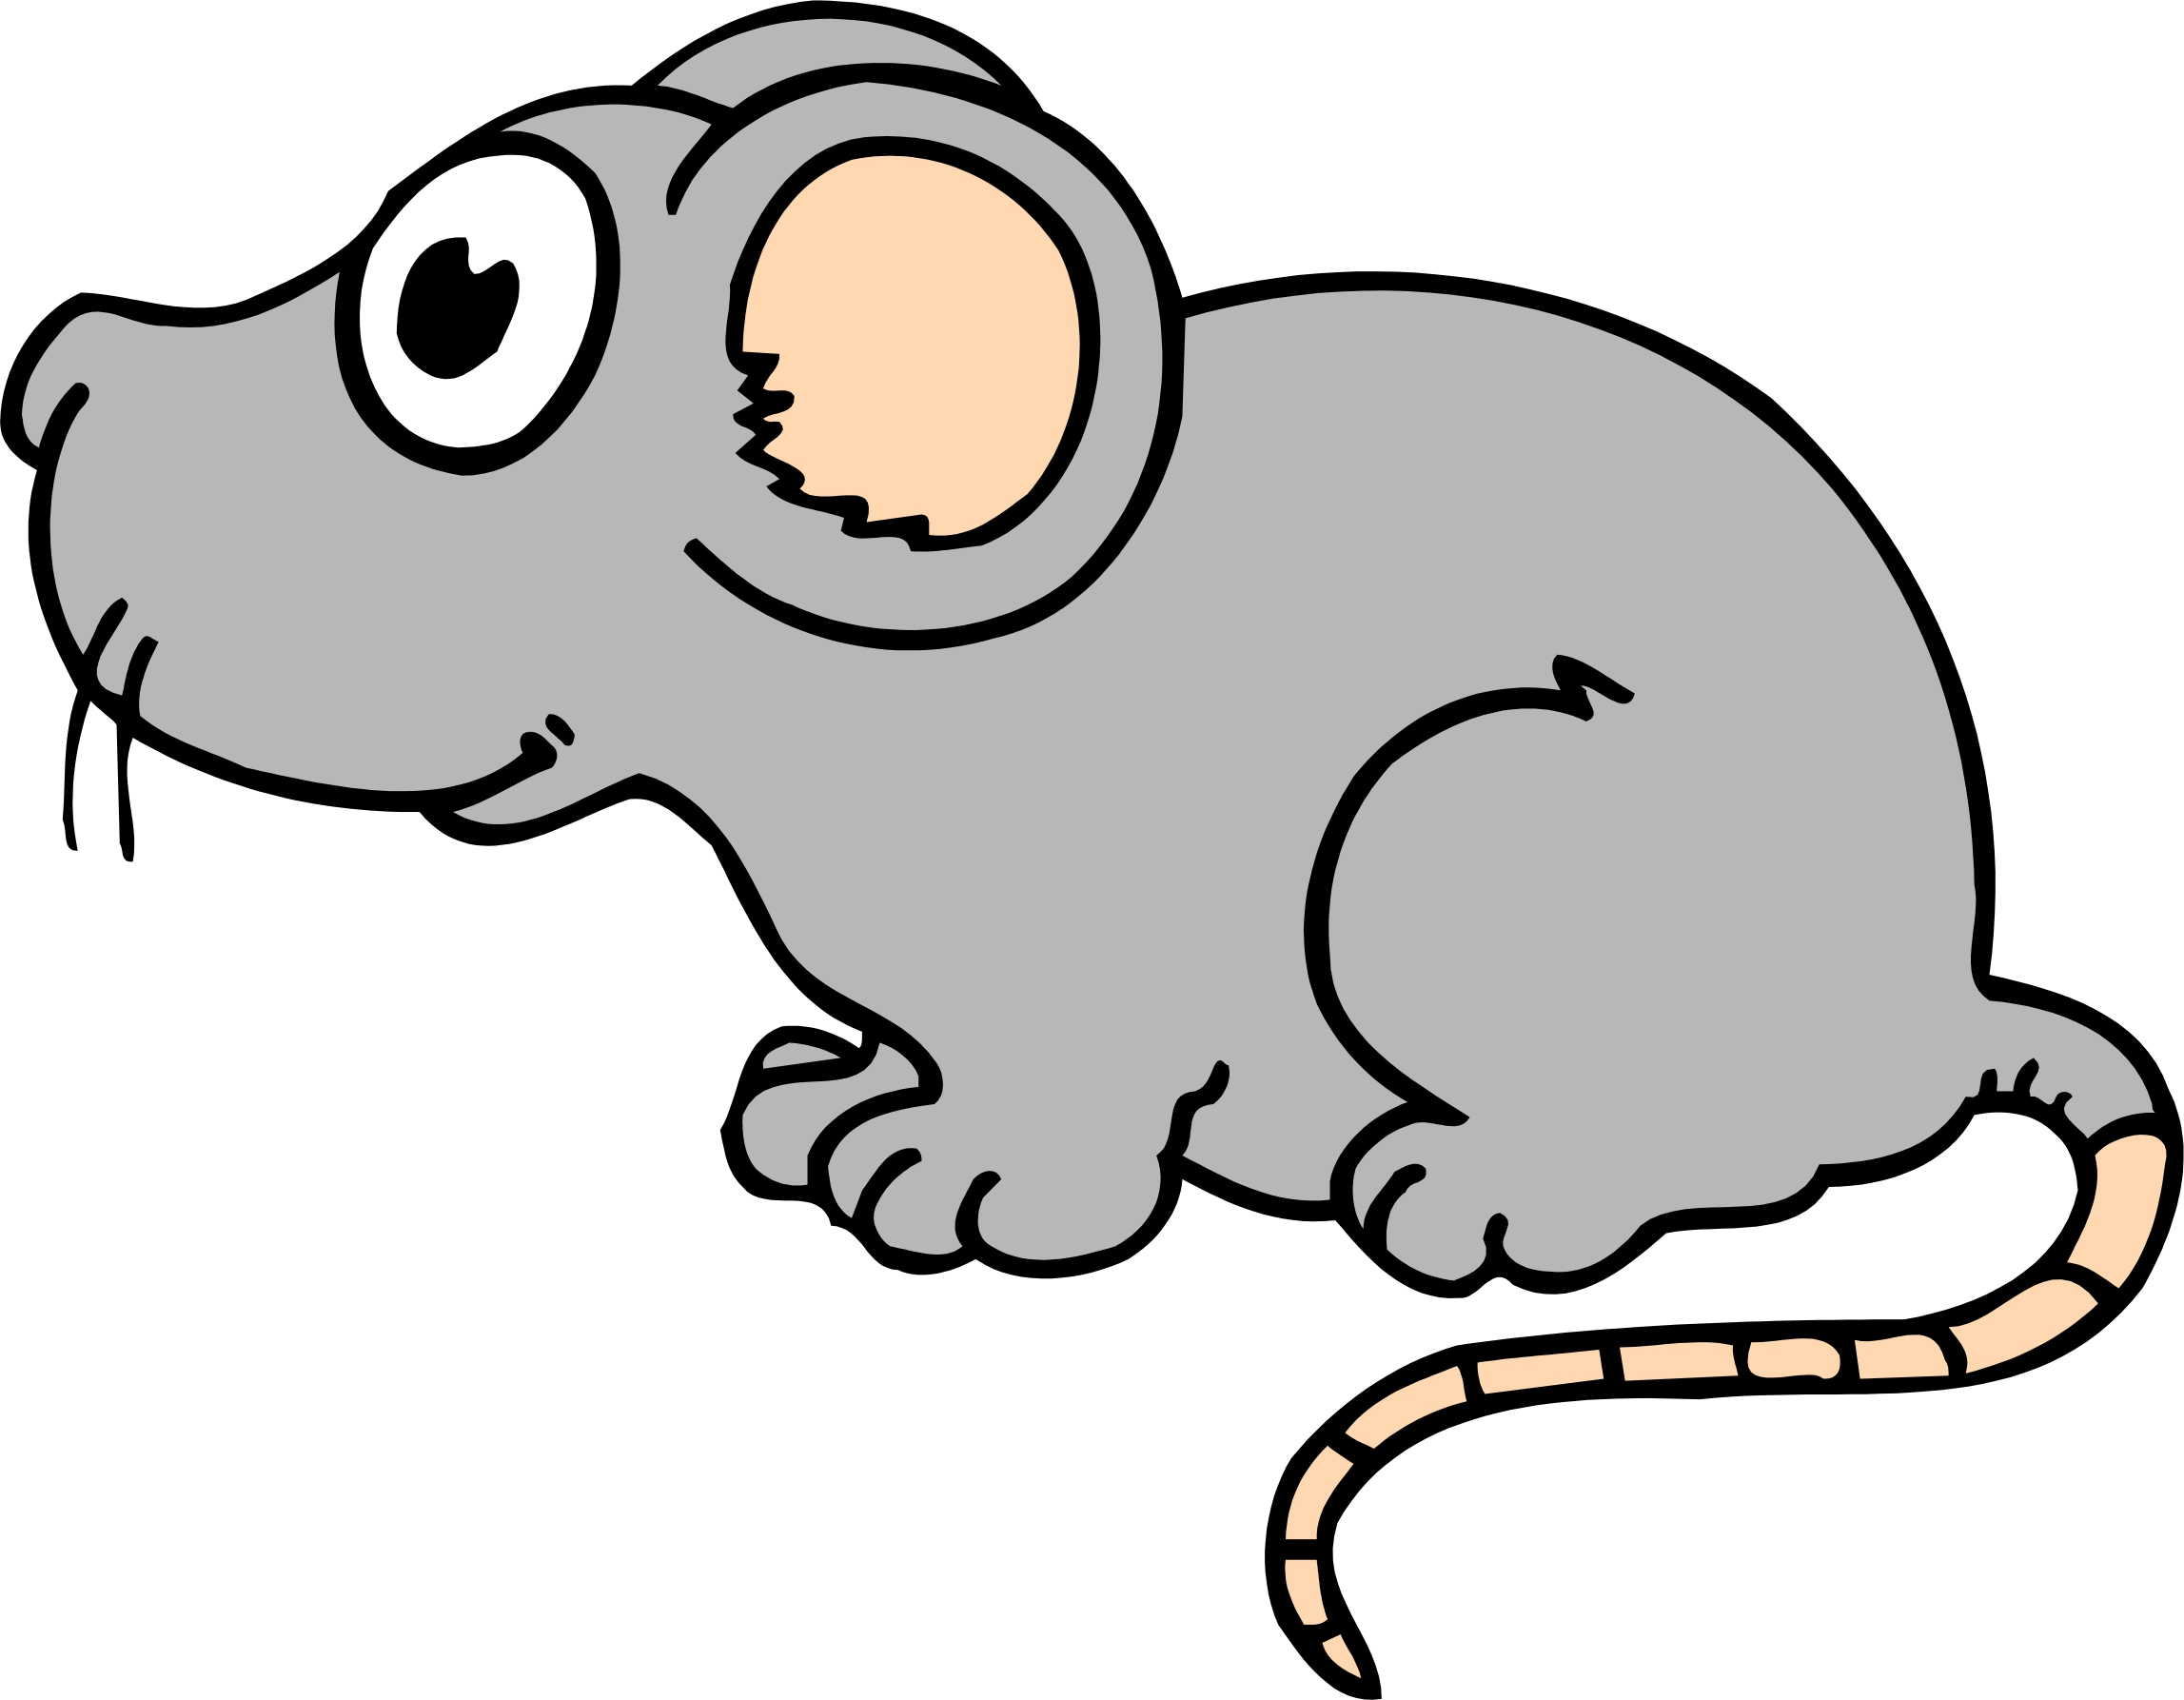 Science clipart mouse Images Clipart Cartoon Clipartwork Clipart